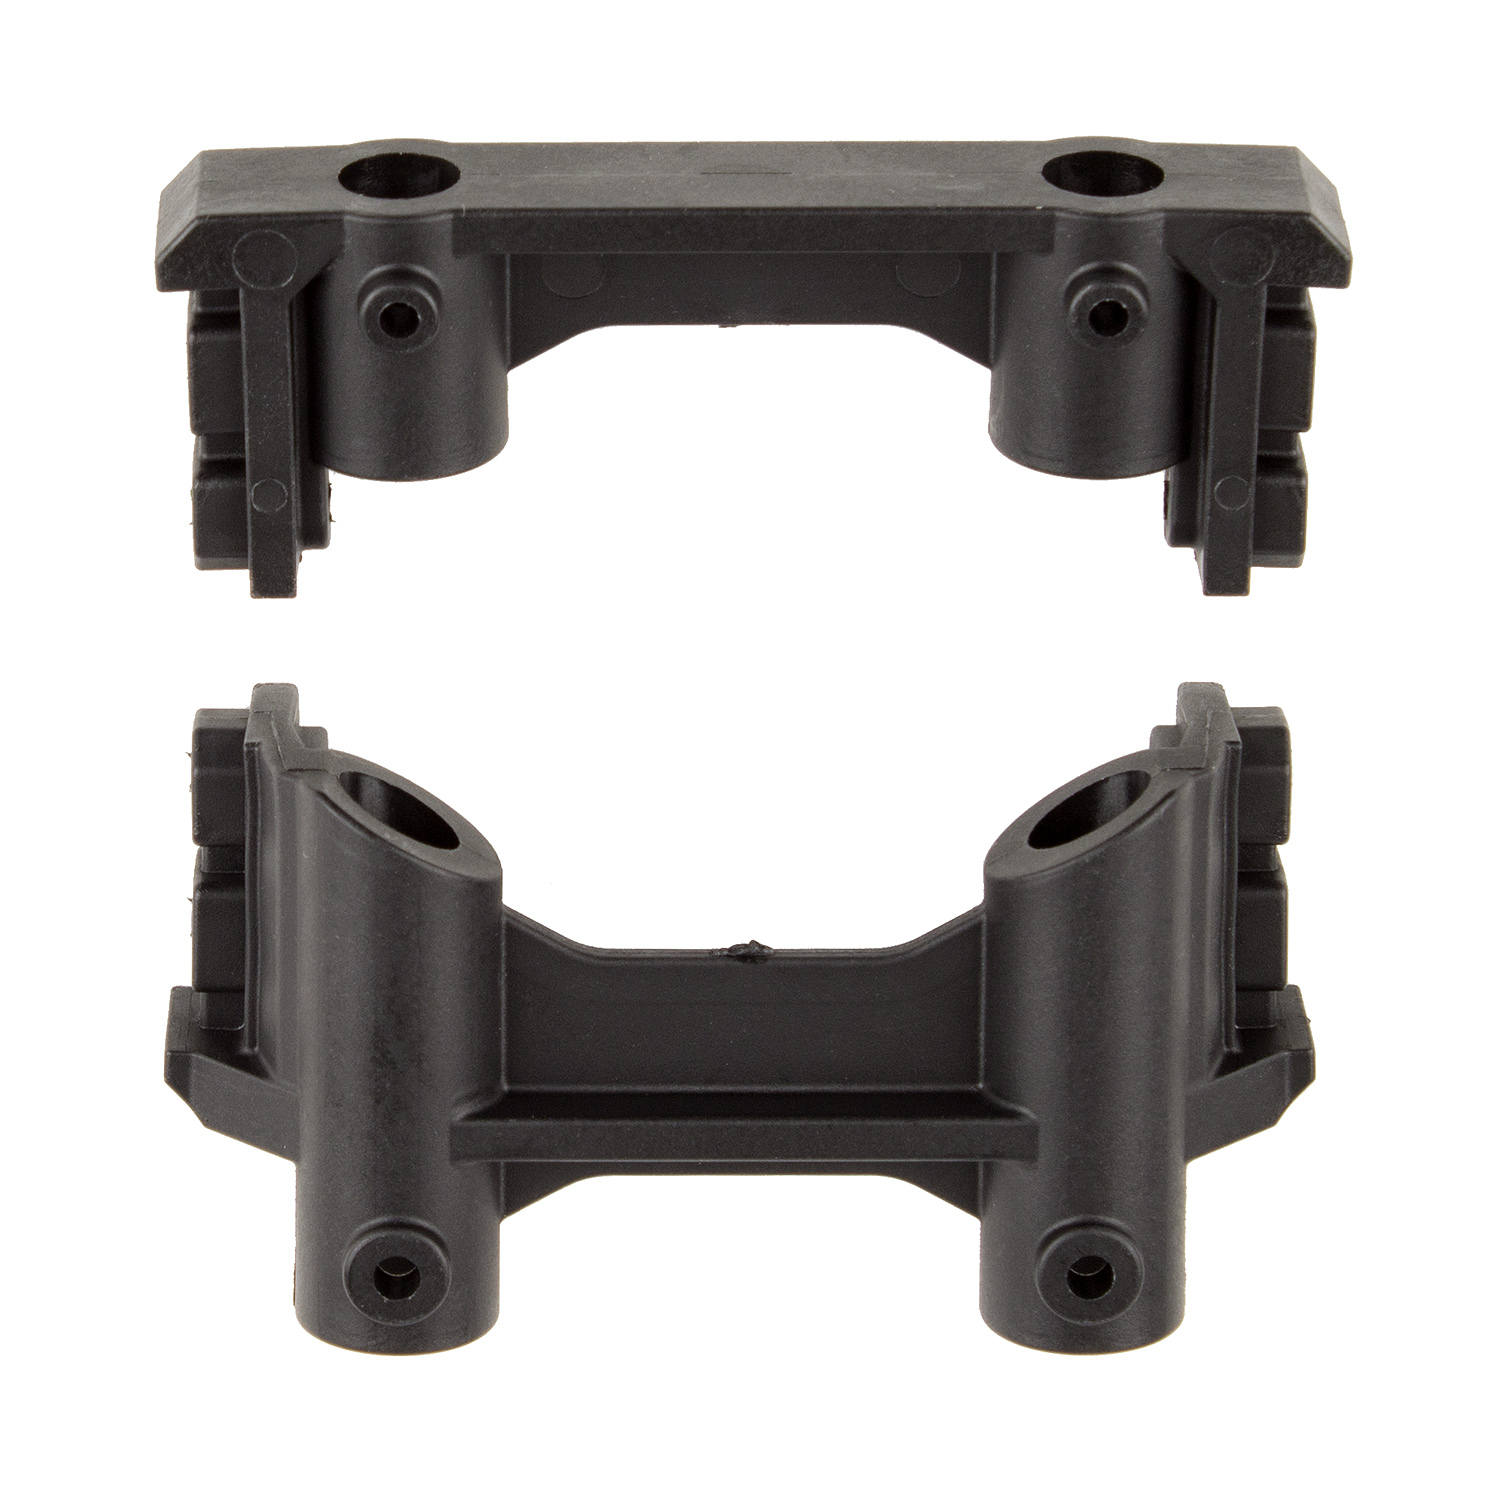 ELEMENT RC ENDURO BUMPER MOUNTS